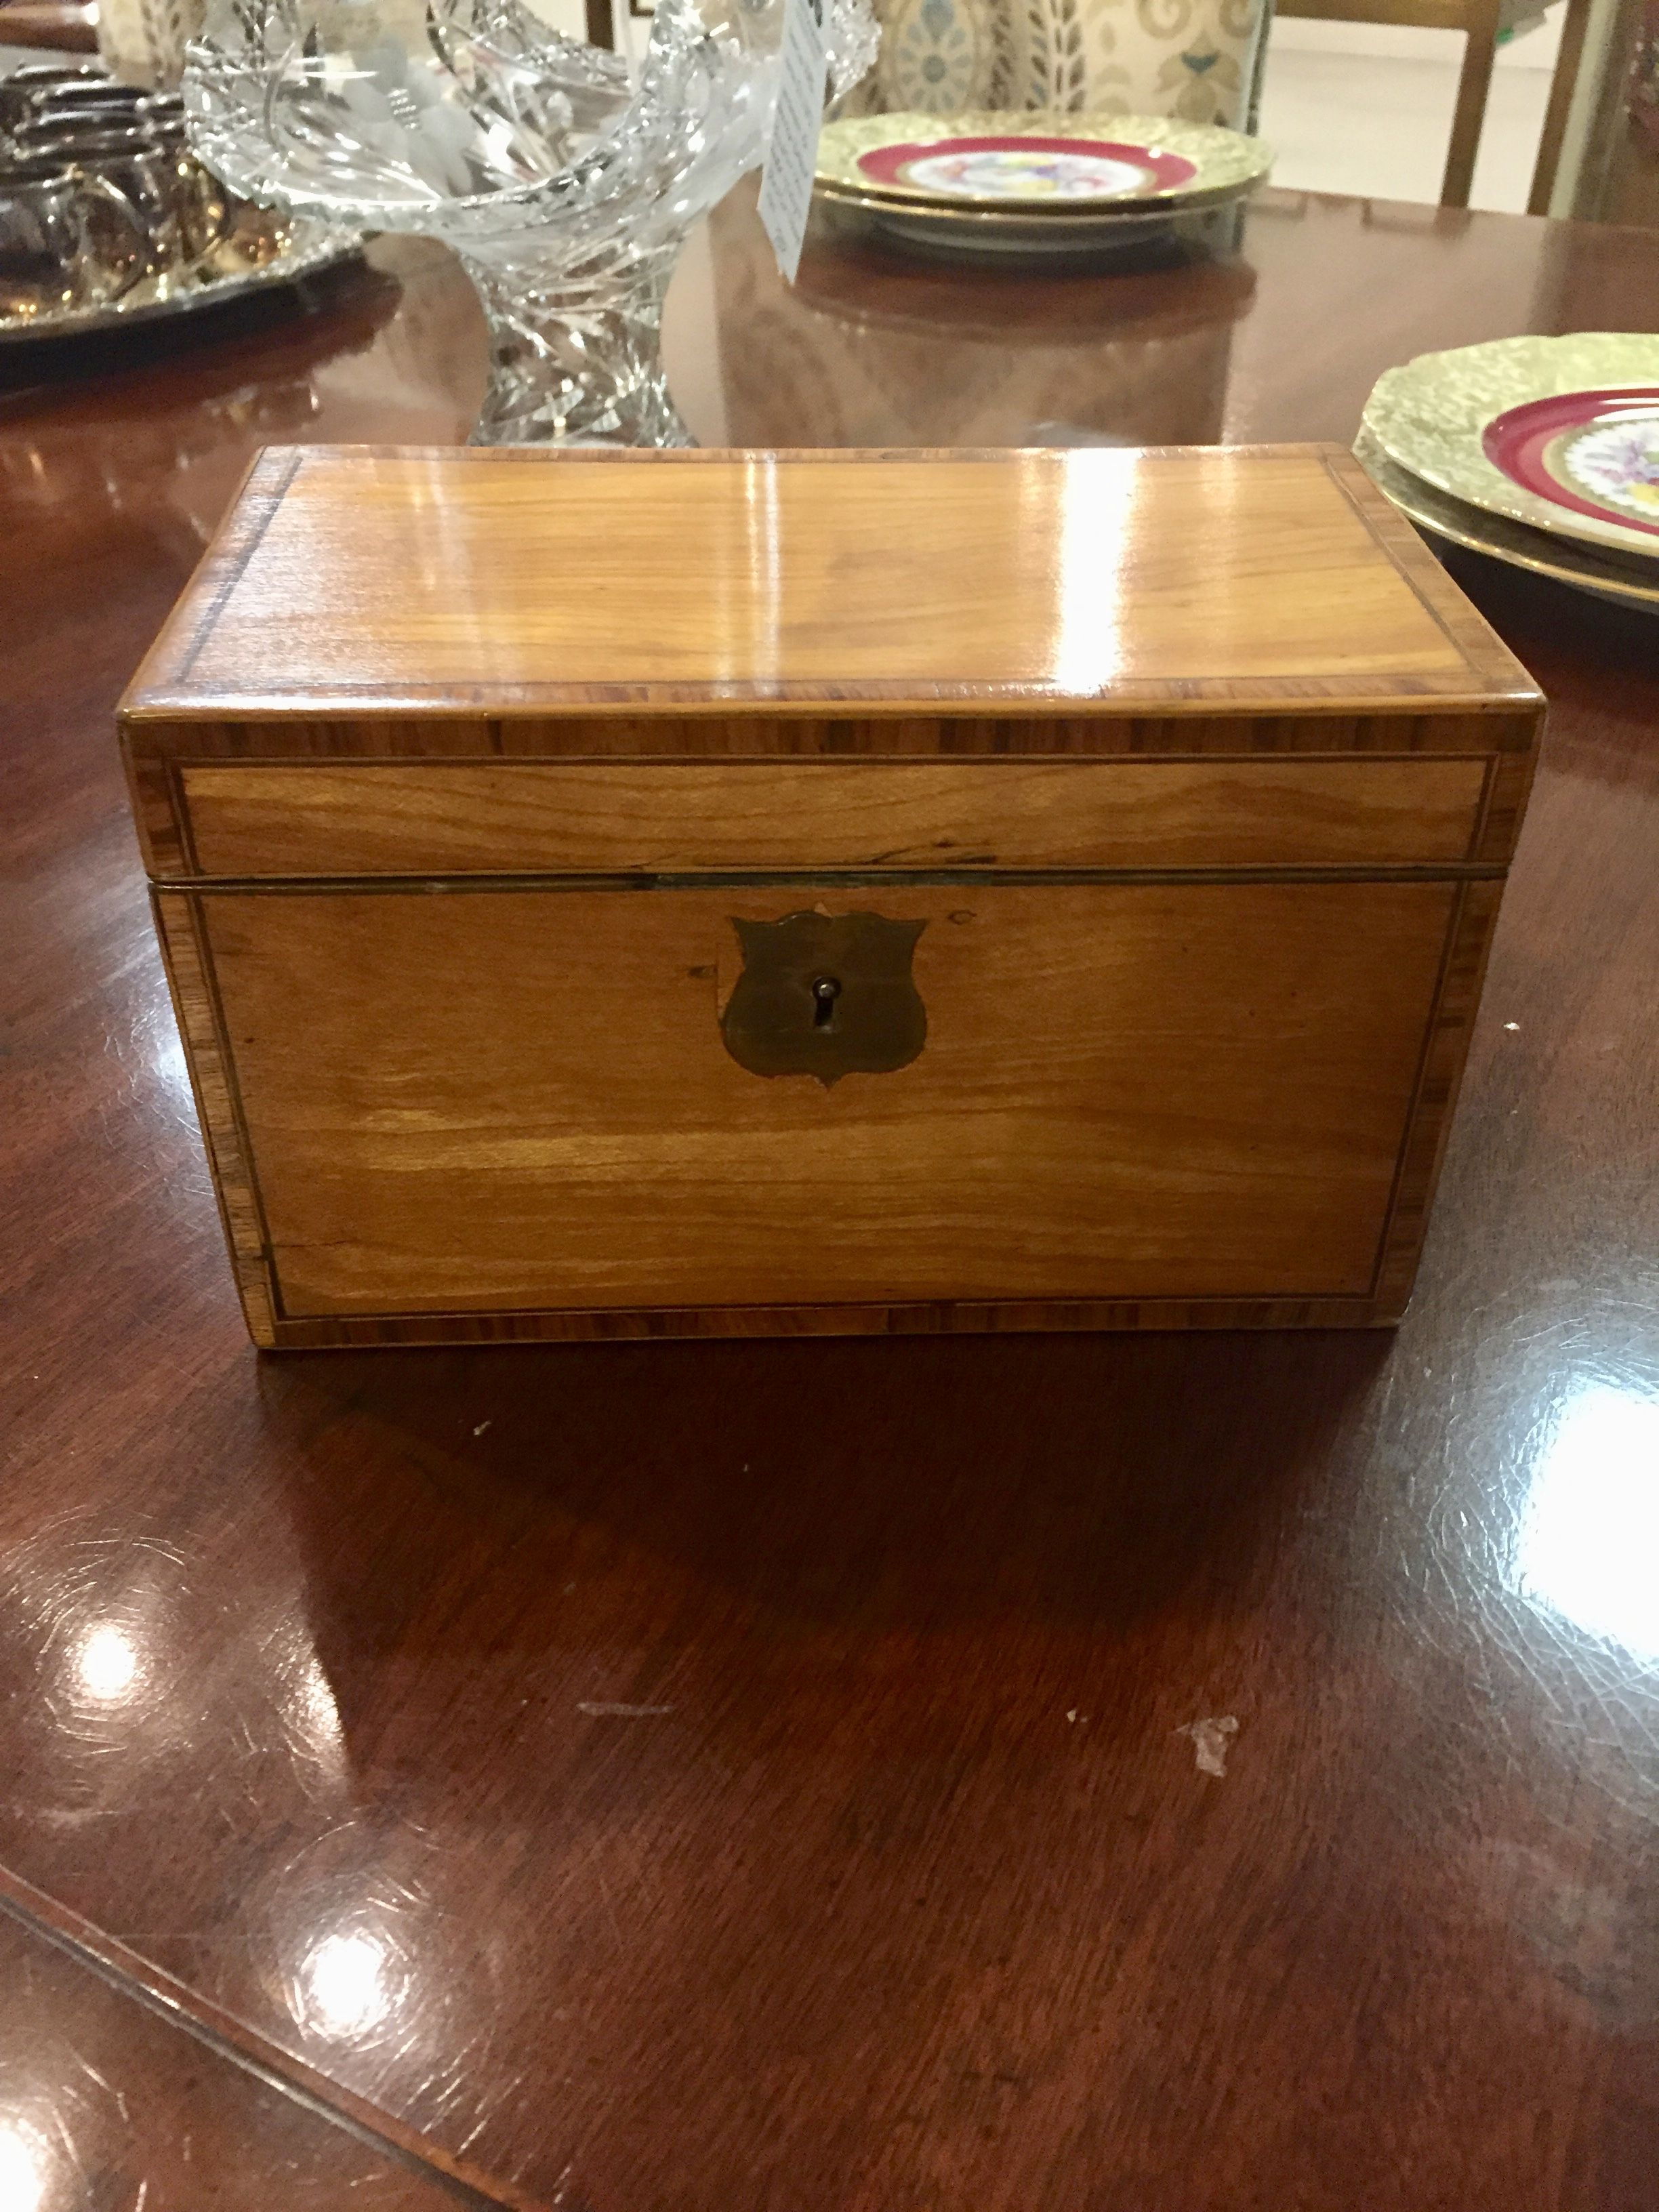 George IV Double Compartment Tea Caddy